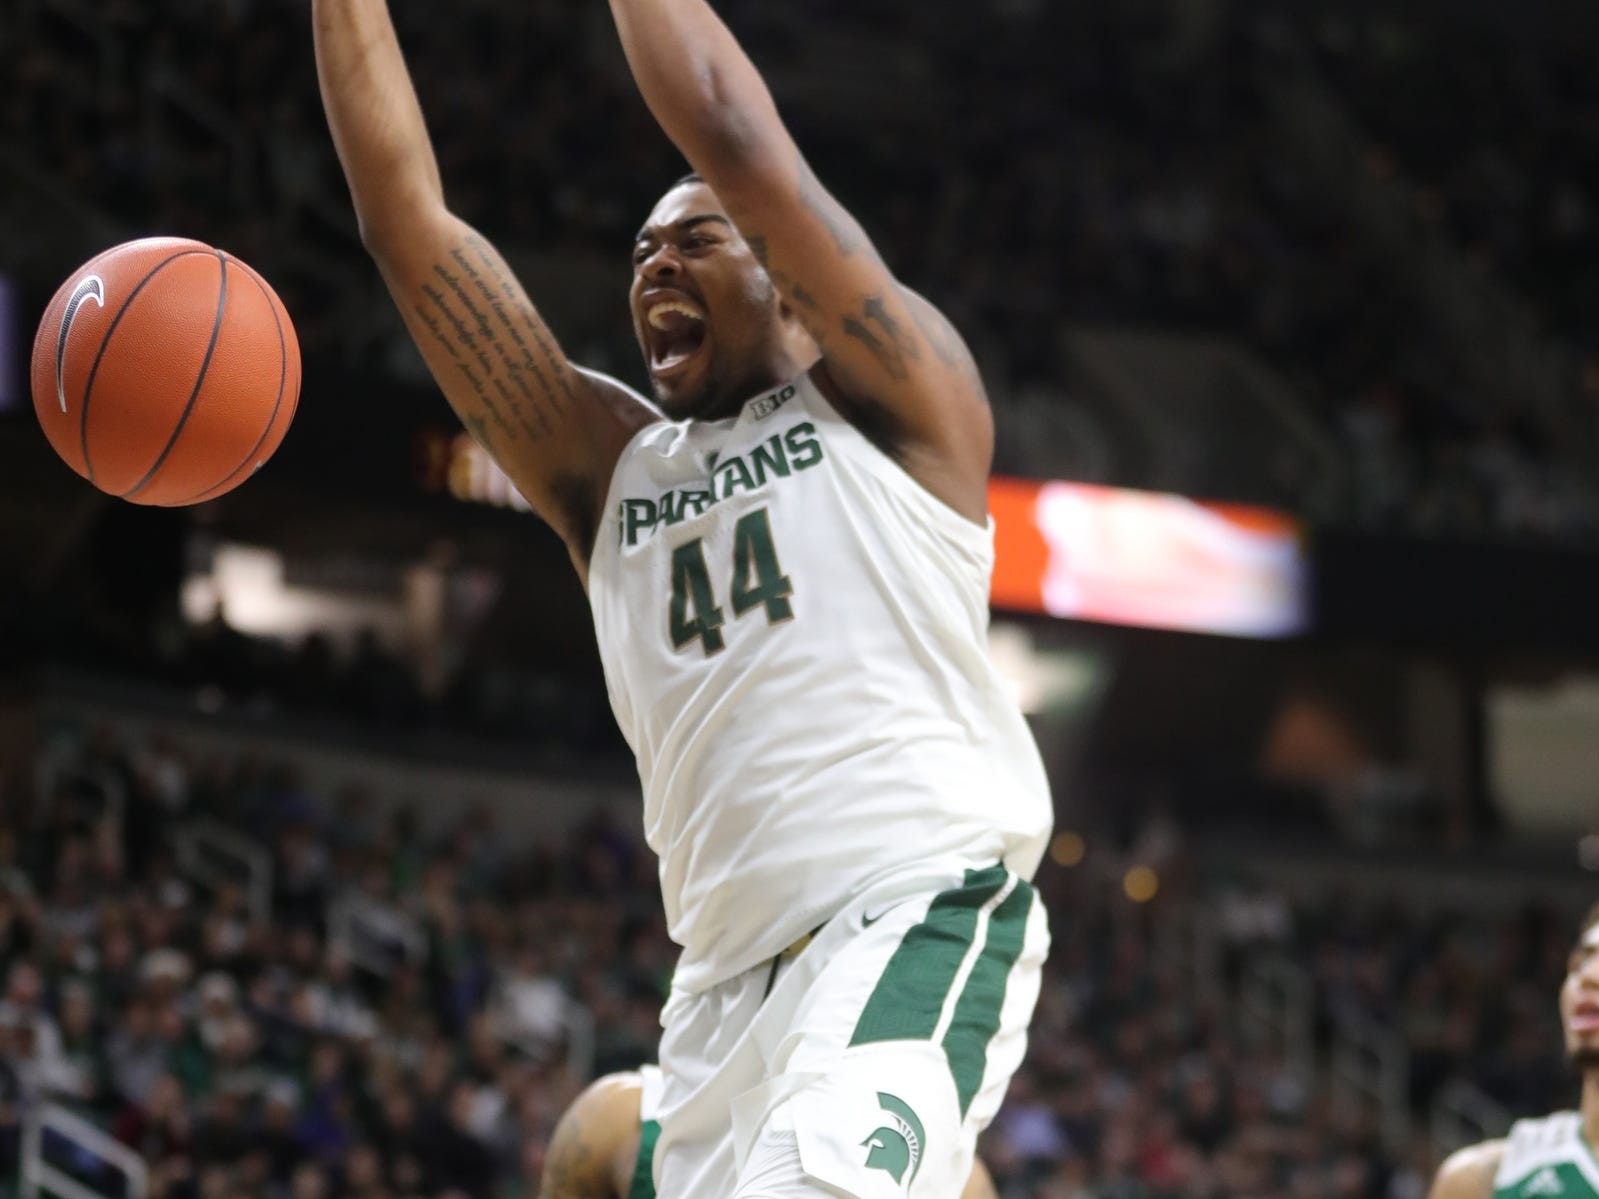 Michigan State forward Nick Ward dunks against Green Bay in the first half Sunday, Dec. 16, 2018 at the Breslin Center in East Lansing.